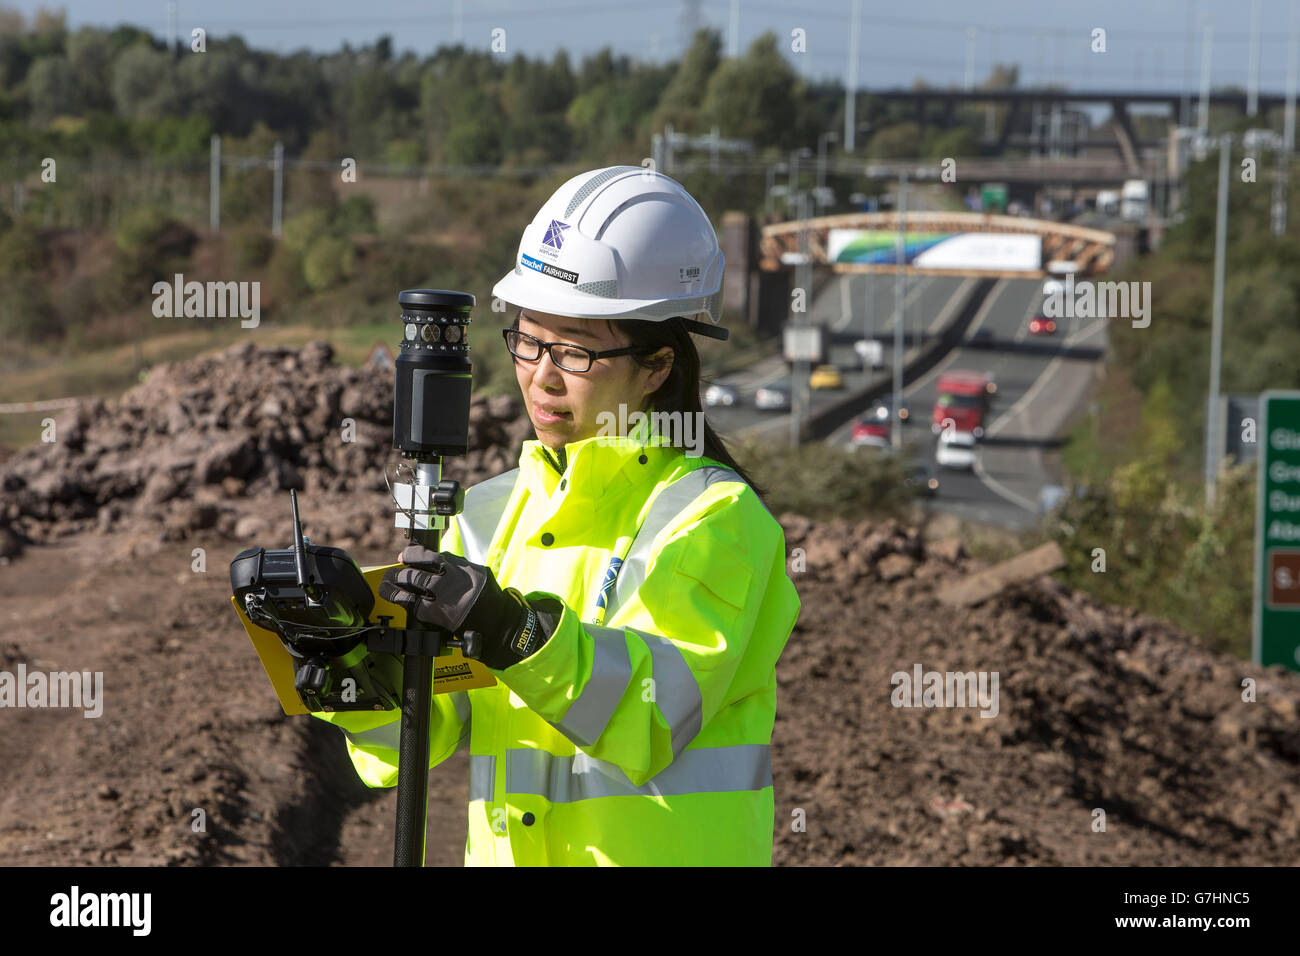 Chinese woman surveyor on location - Stock Image